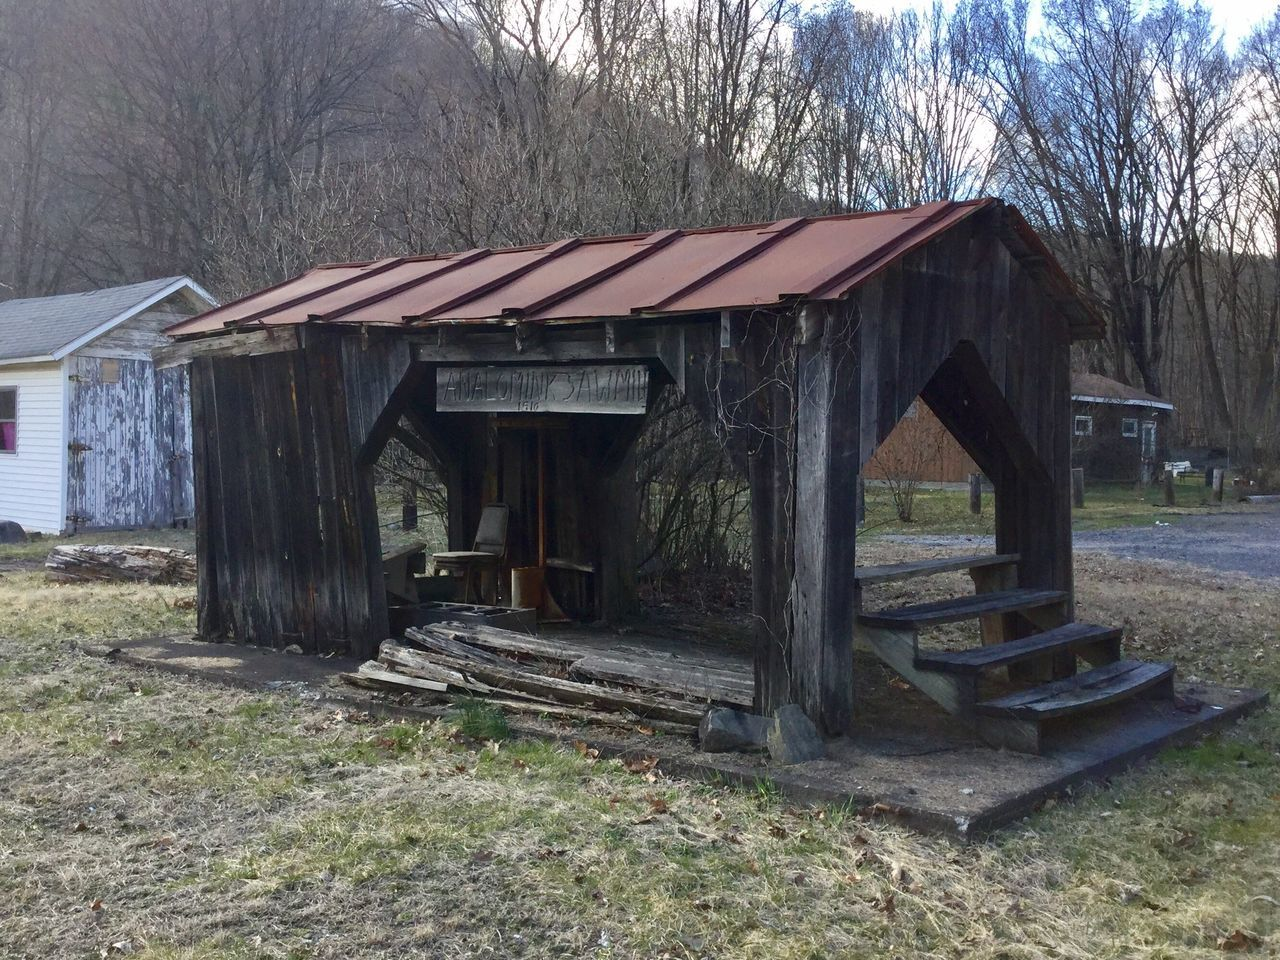 No People Wood - Material Building Exterior Outdoors Built Structure Day Eye Em New Here